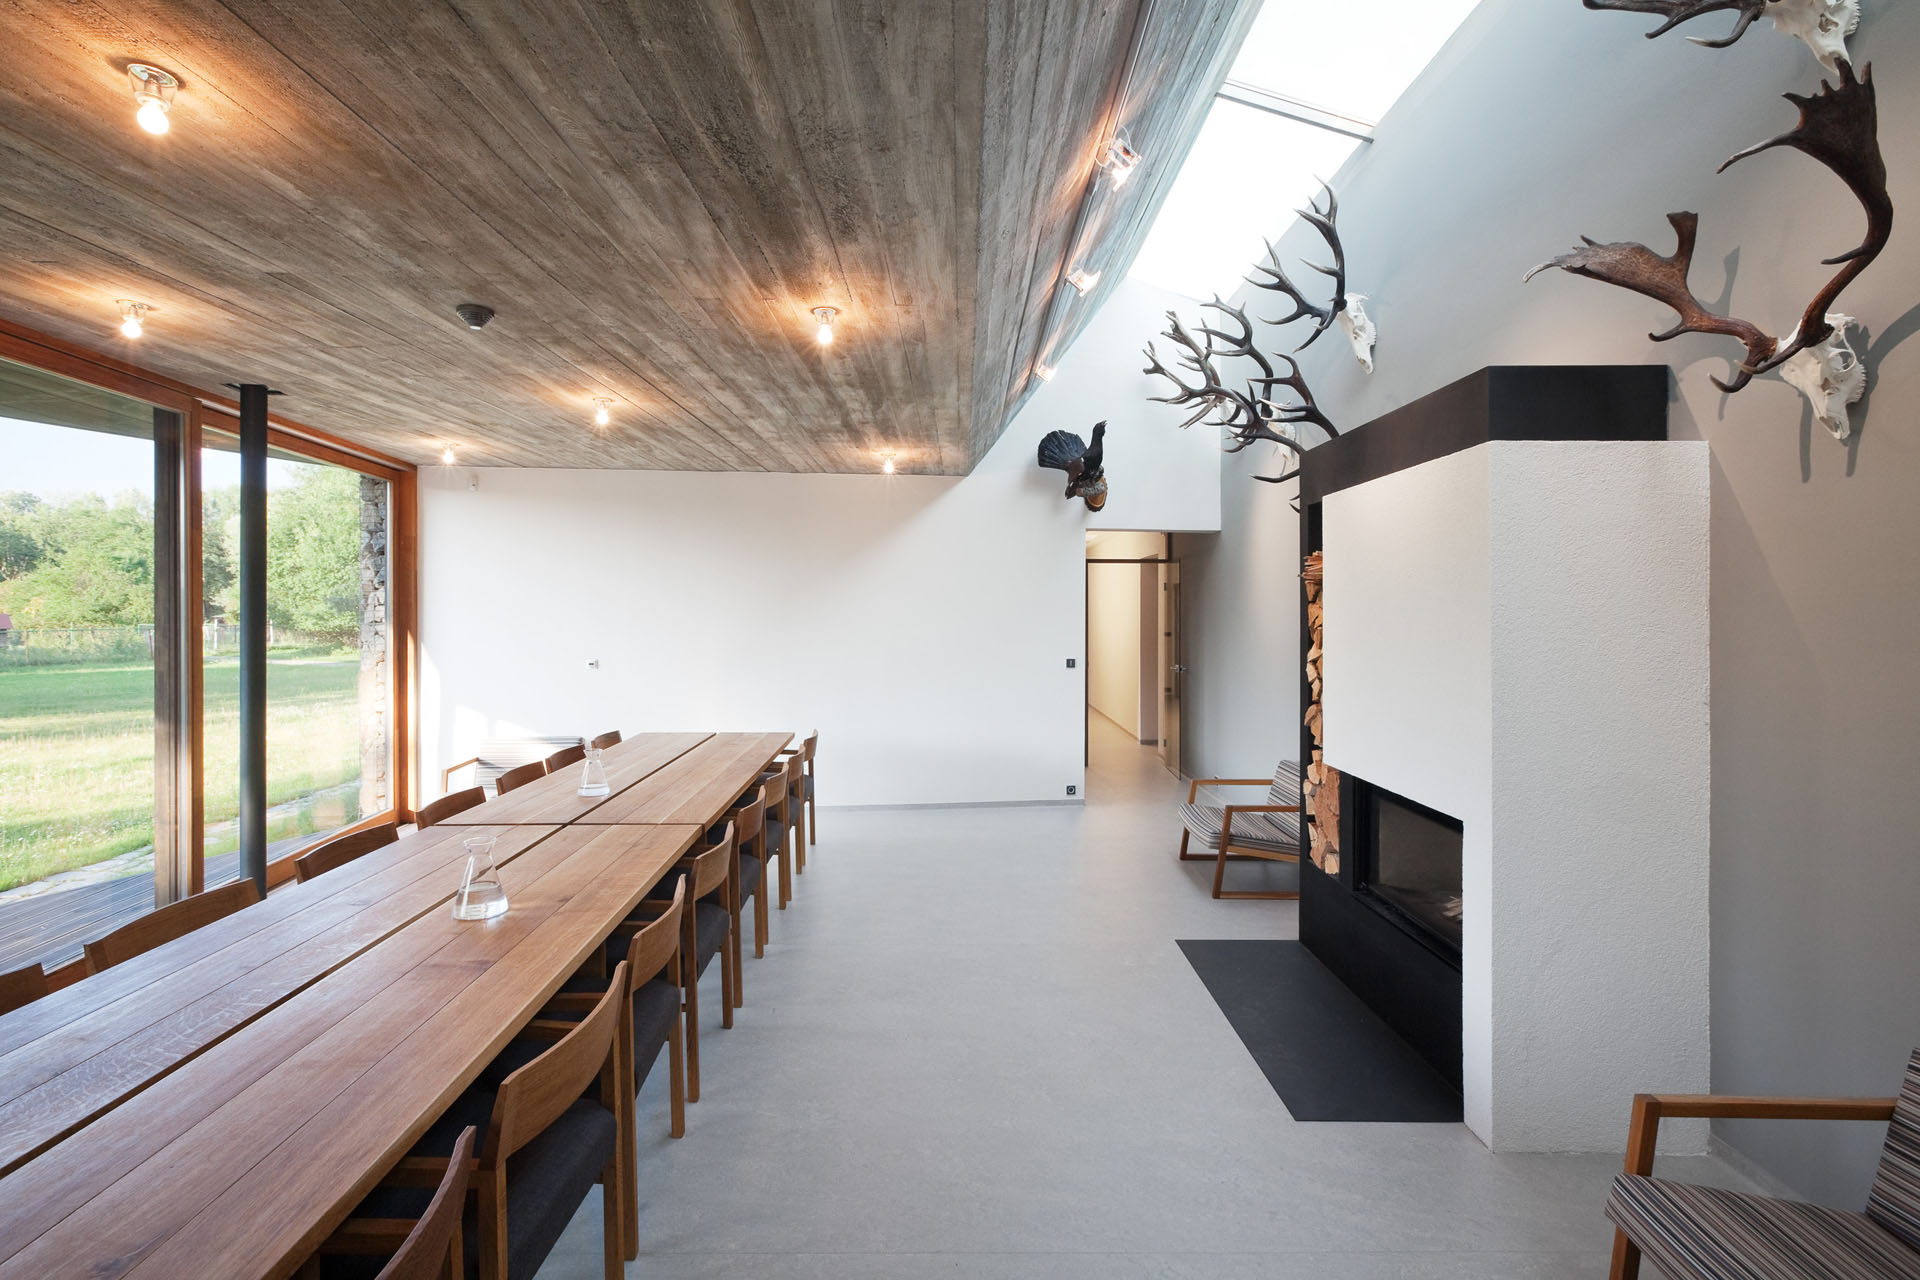 Professional photography from Lukas Pelech Atelier. HUNTING LODGE, CZECH REPUBLIC